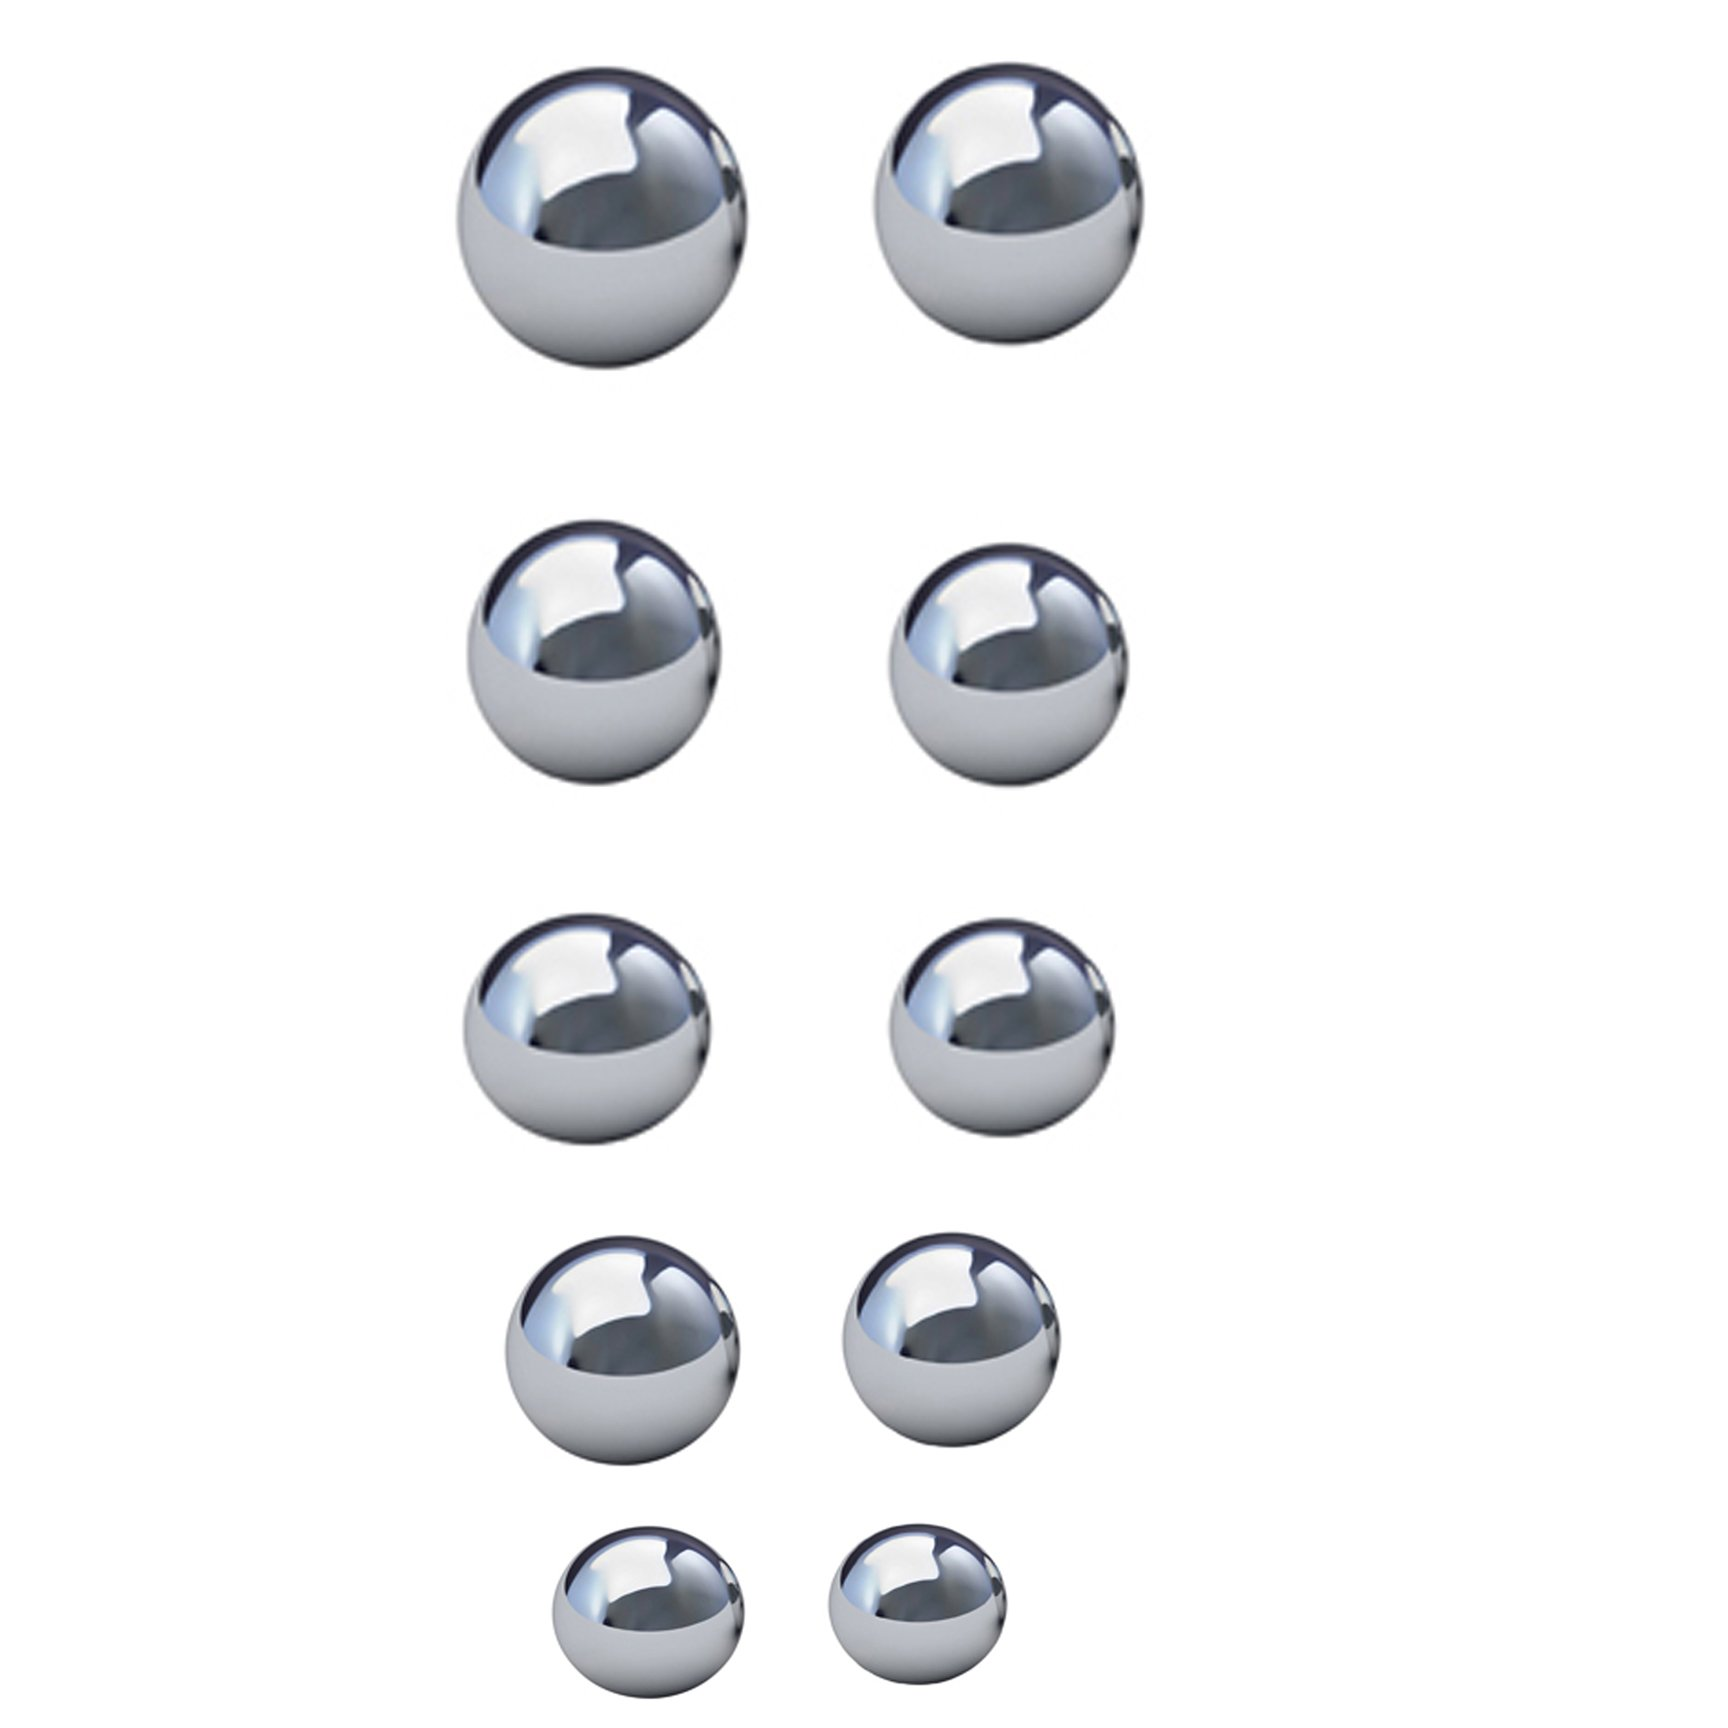 Assorted Coin Ring Making Steel Balls - Set of 10 Balls from1-1/16 to 5/8